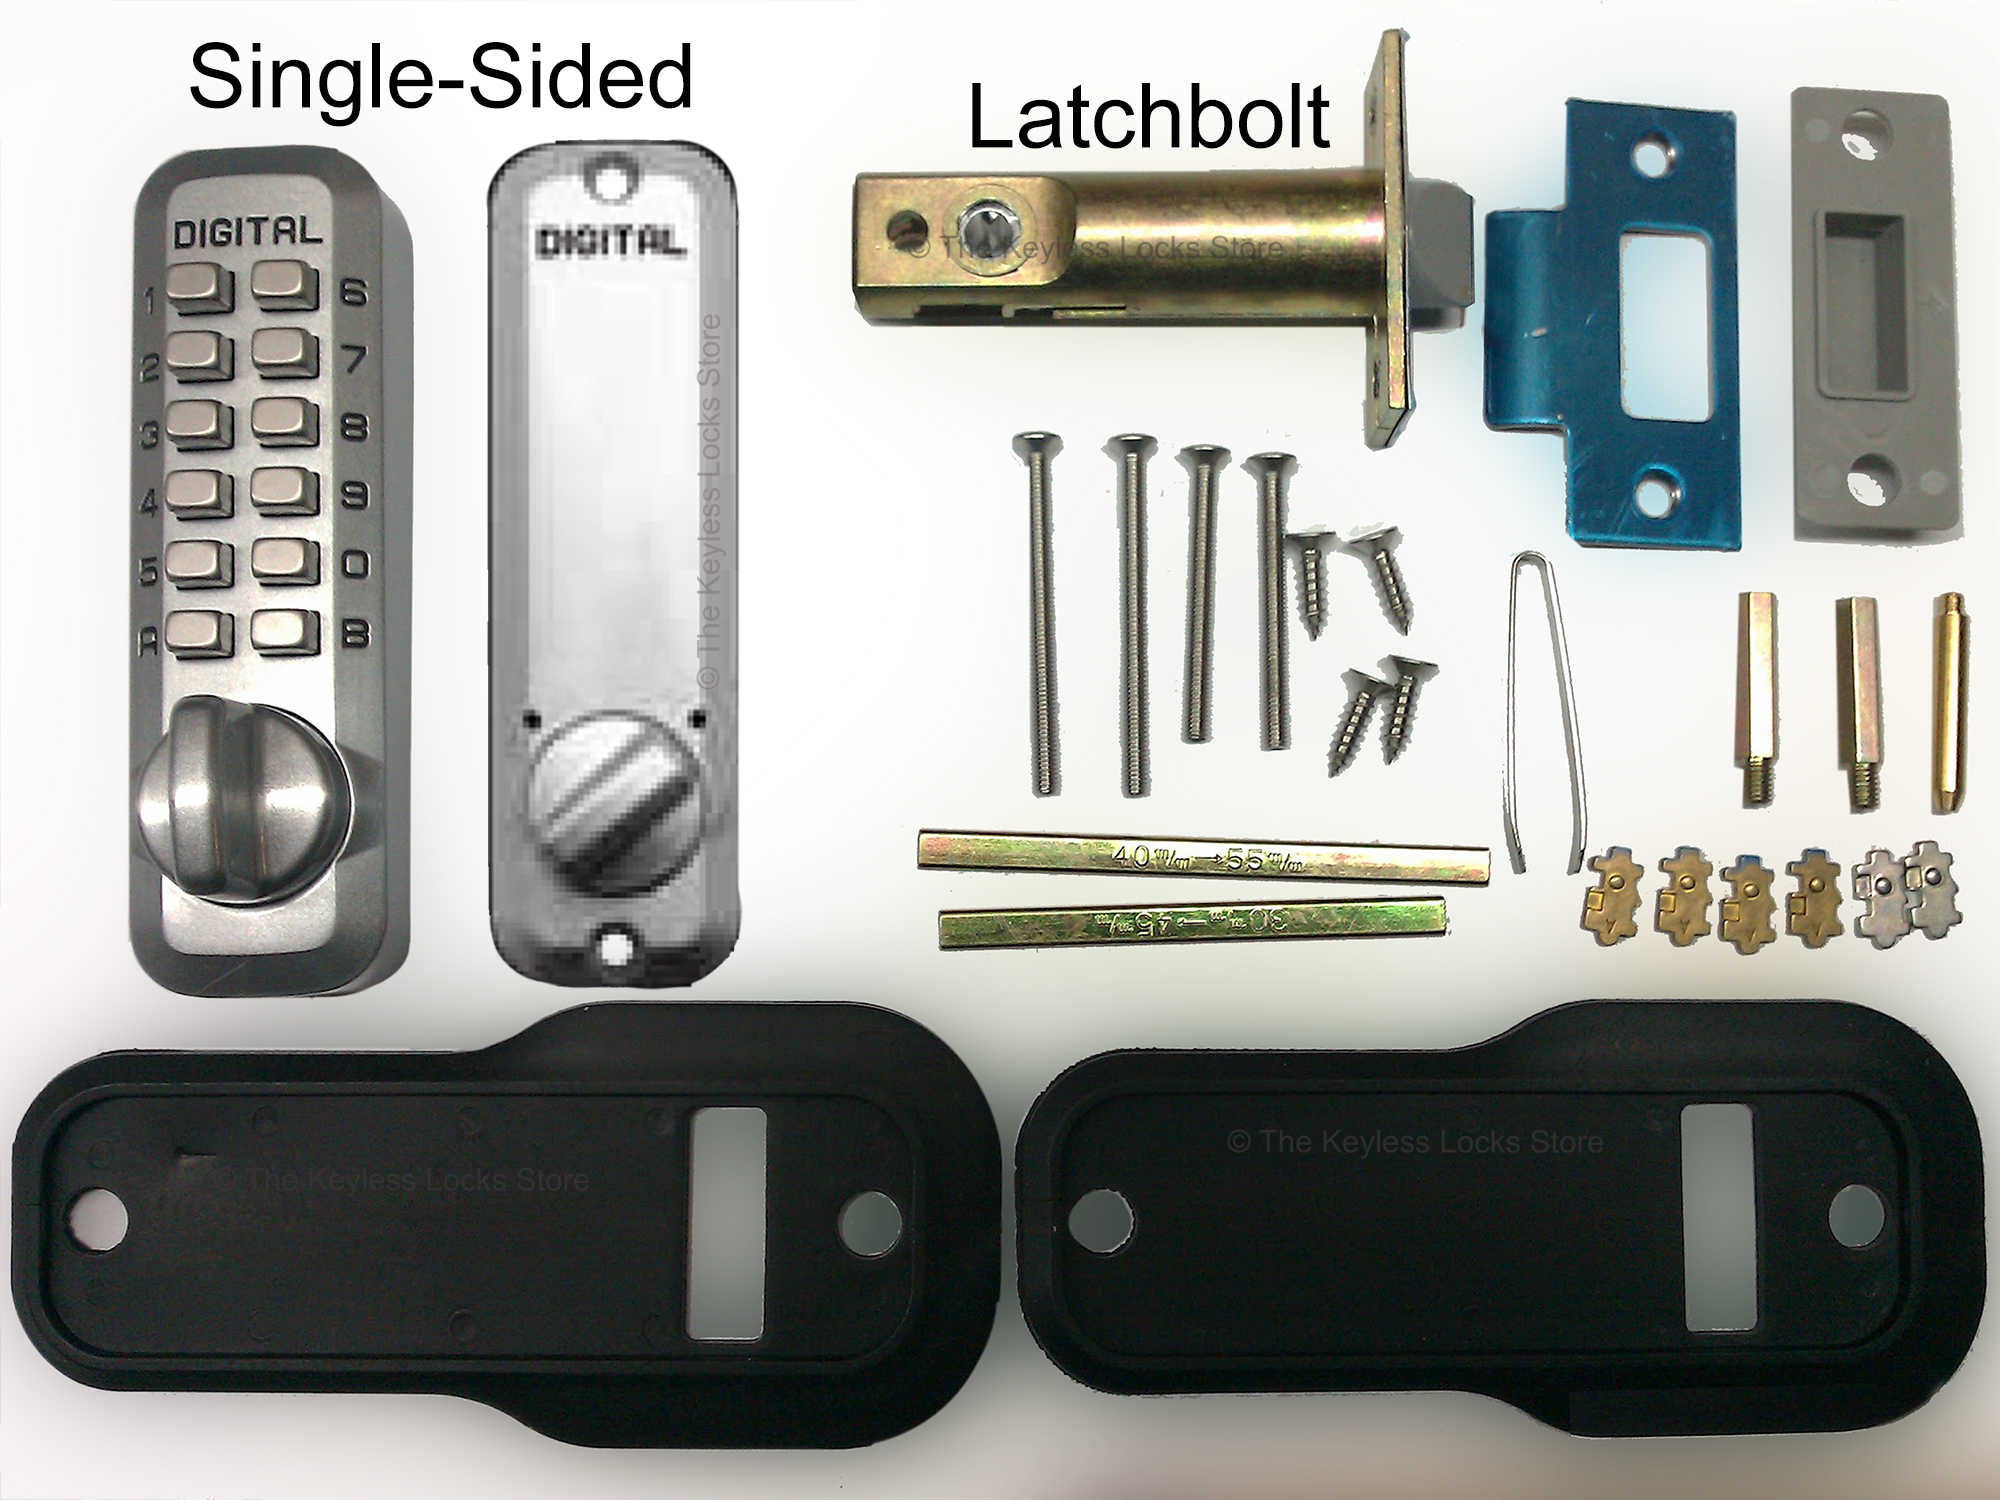 Lockey M230 Spring Latchbolt Lock